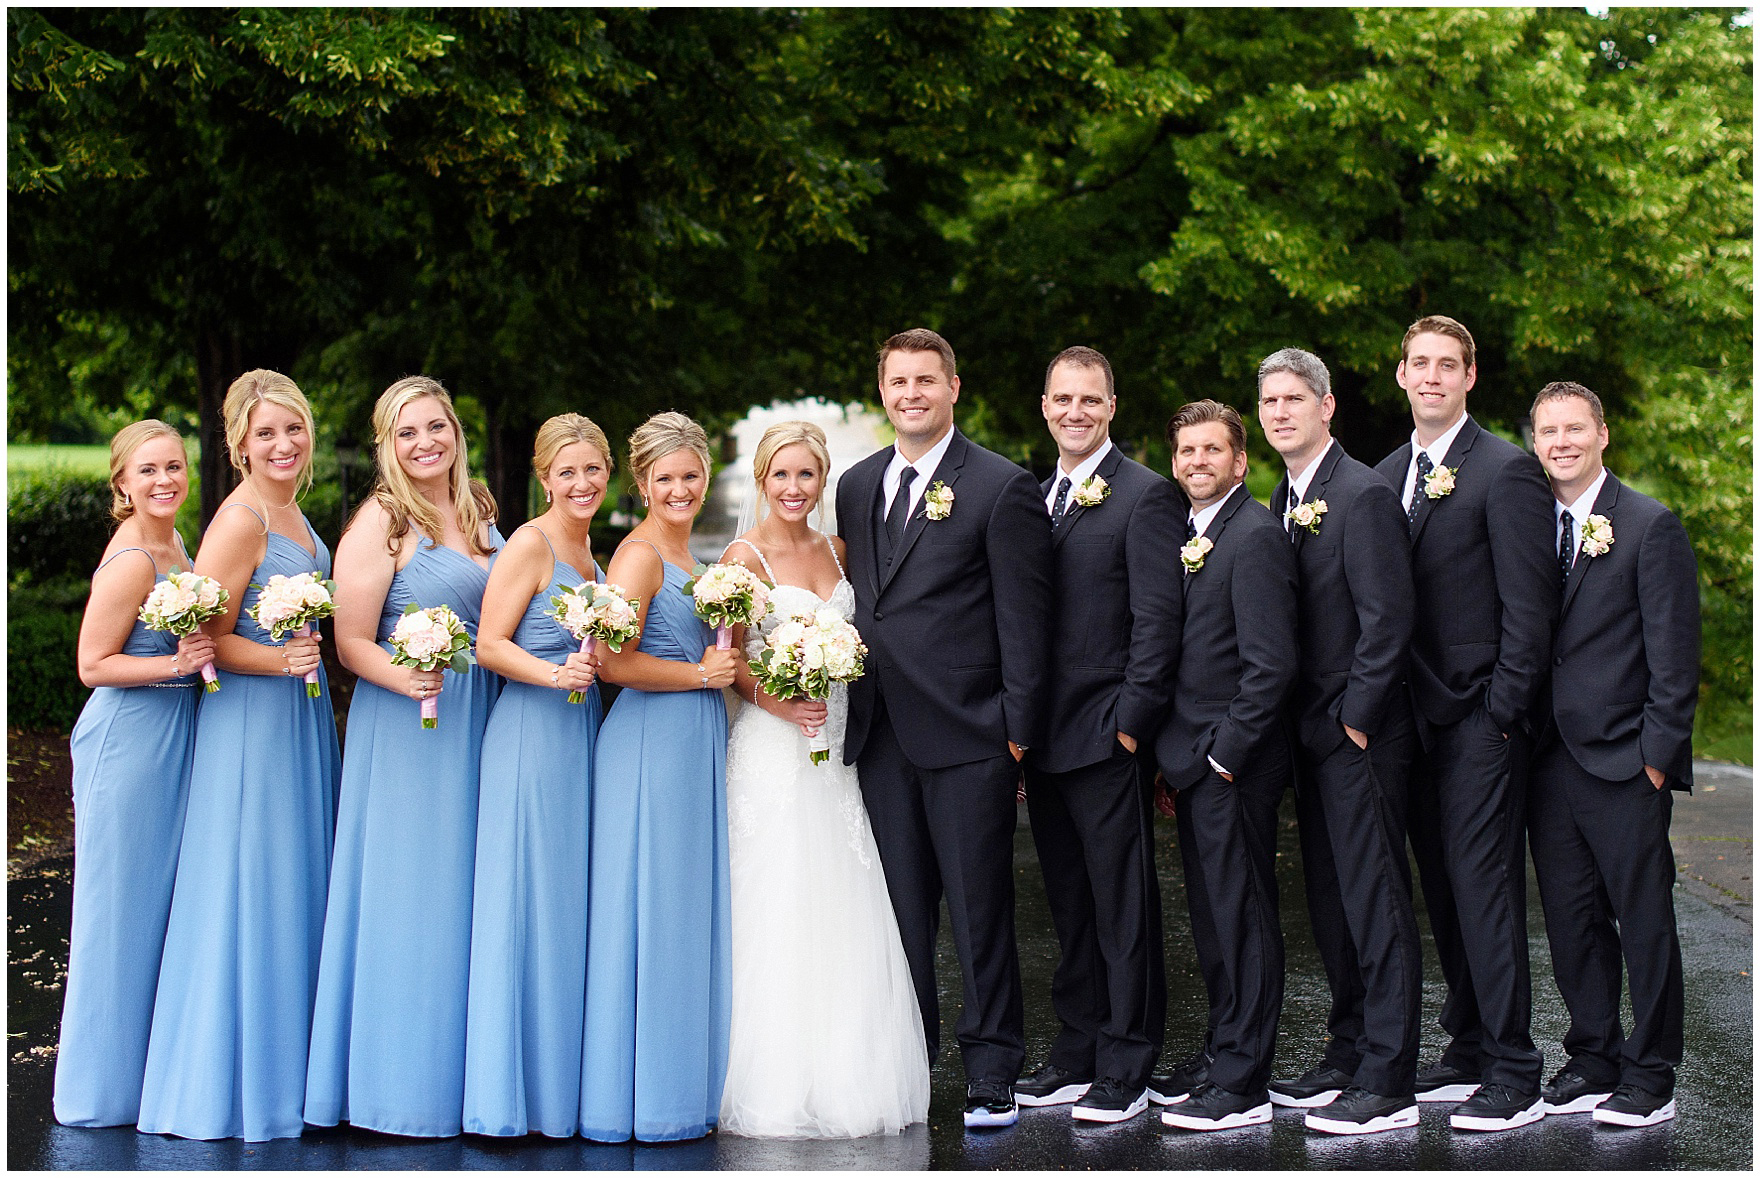 A bridal party poses at an Itasca Country Club Illinois wedding.